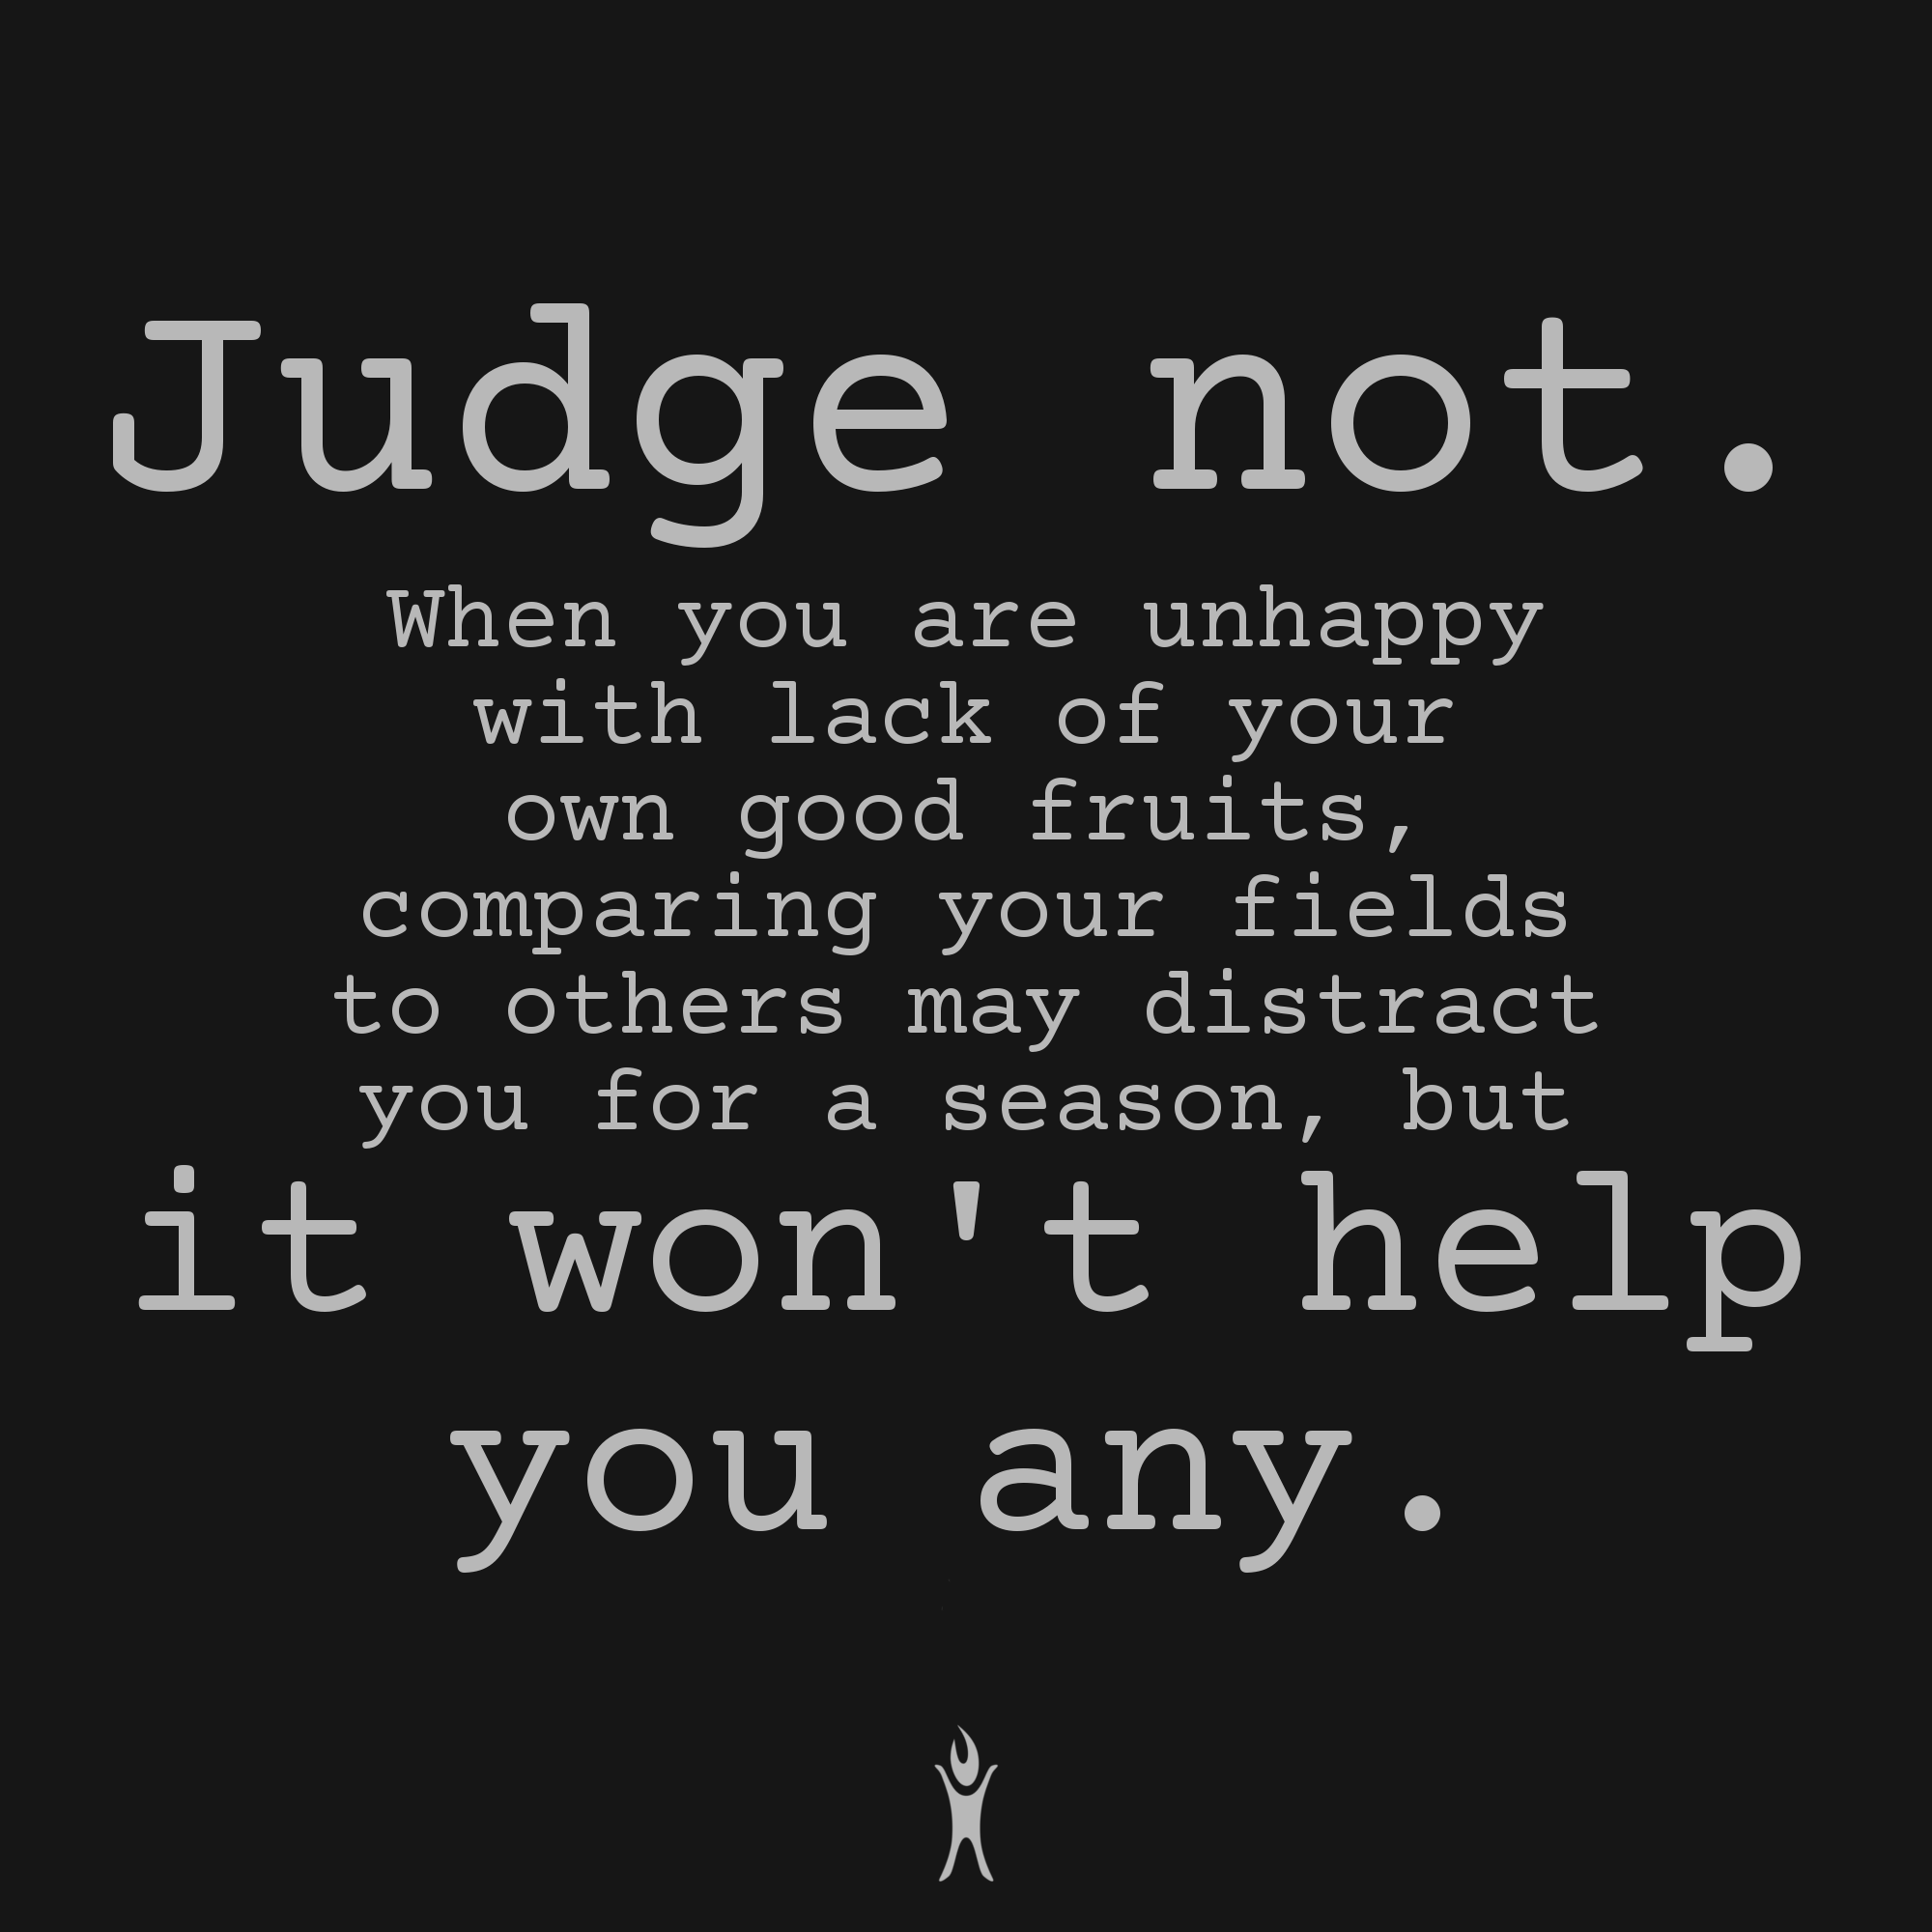 Judge not. It won't help you any.